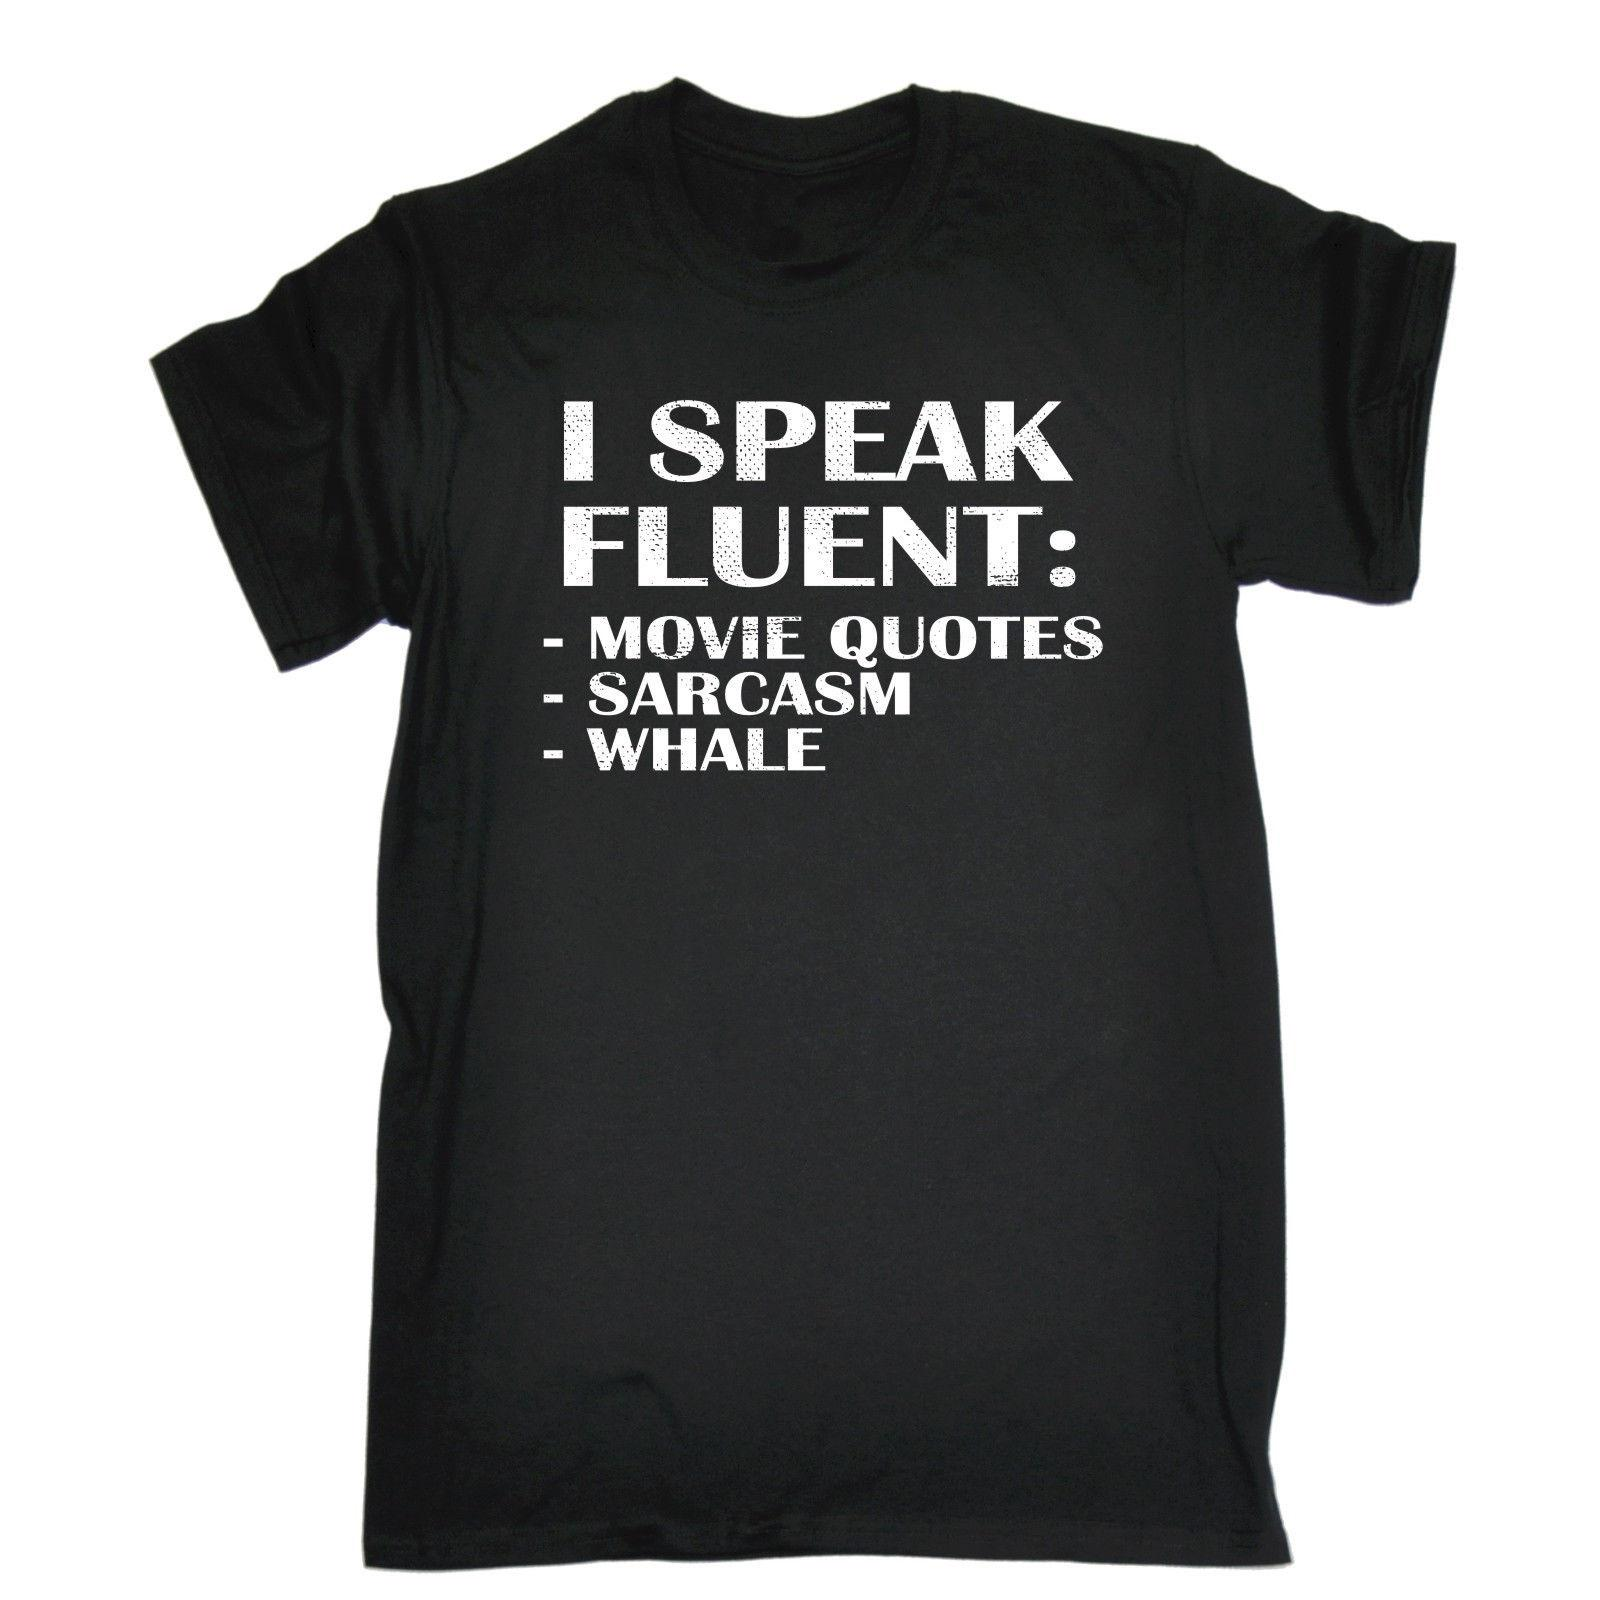 19e633a6917 Speak Fluent Movie Quotes T SHIRT Film Popular Culture Funny Birthday Gift  Top New Fashion Really Funny Shirts Clothes T Shirt From Onefulcup